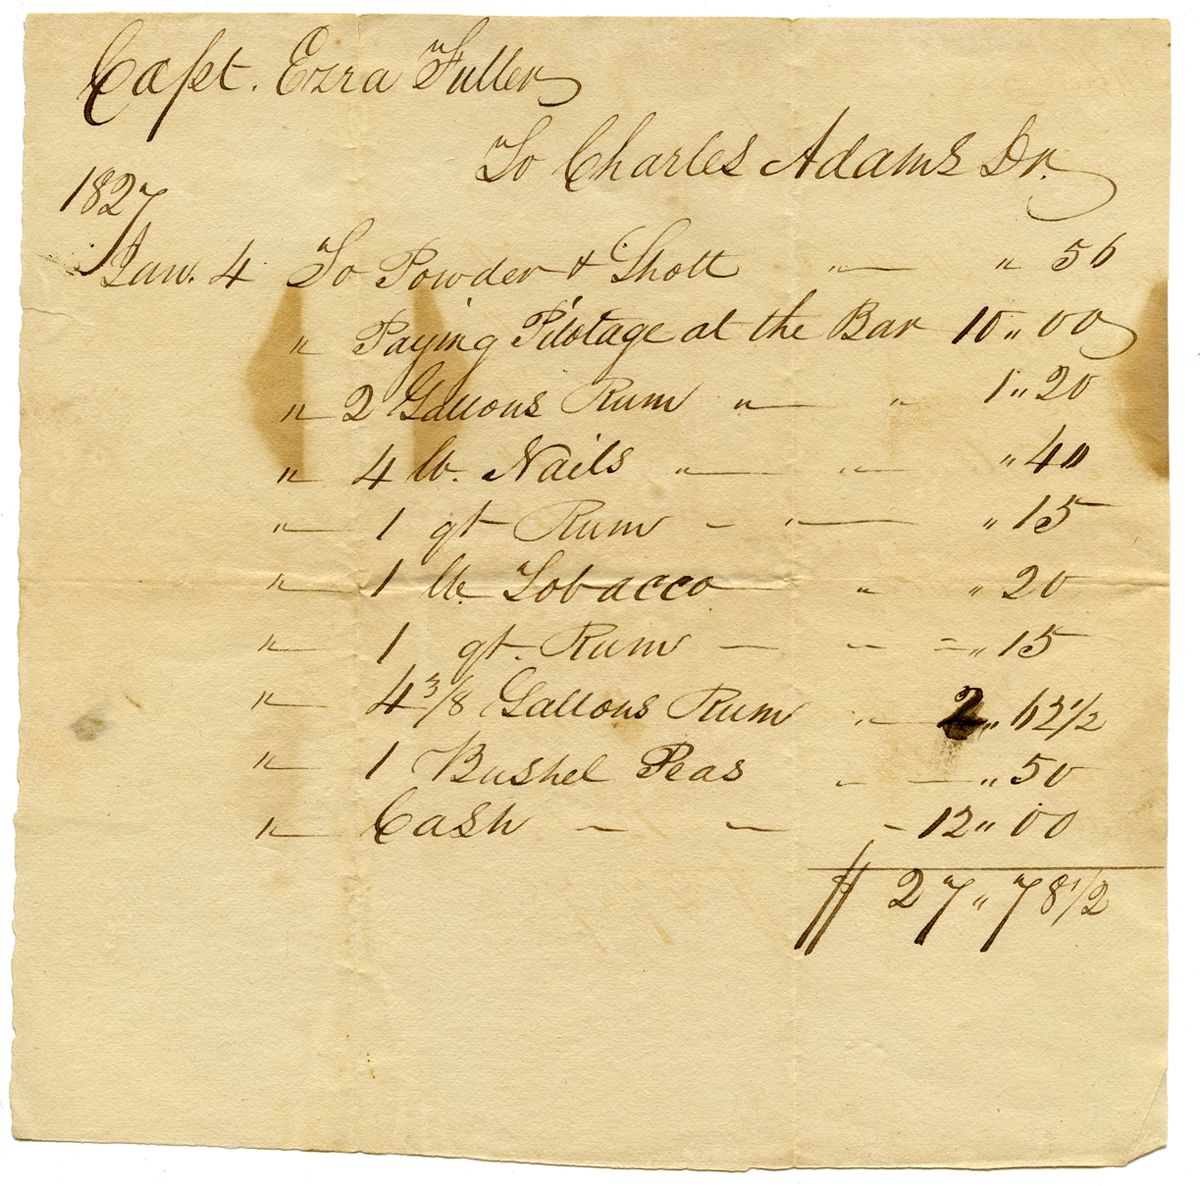 Capt. Ezra Fuller to Charles Adams, Jan. 4, 1827